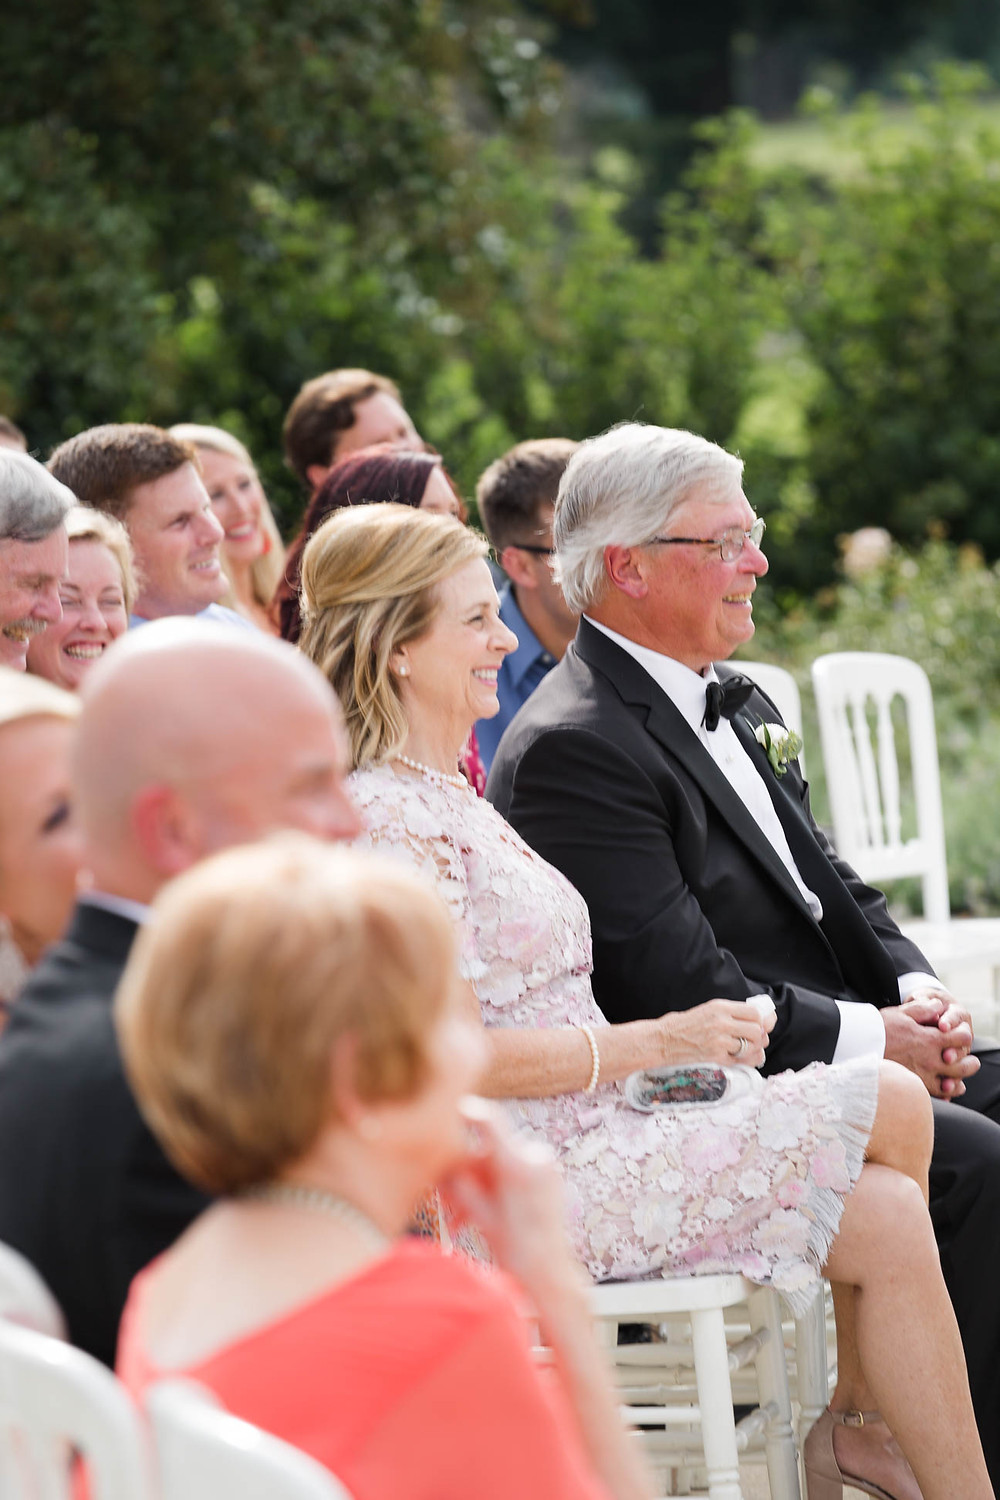 brides parents happily watch their daughter get married